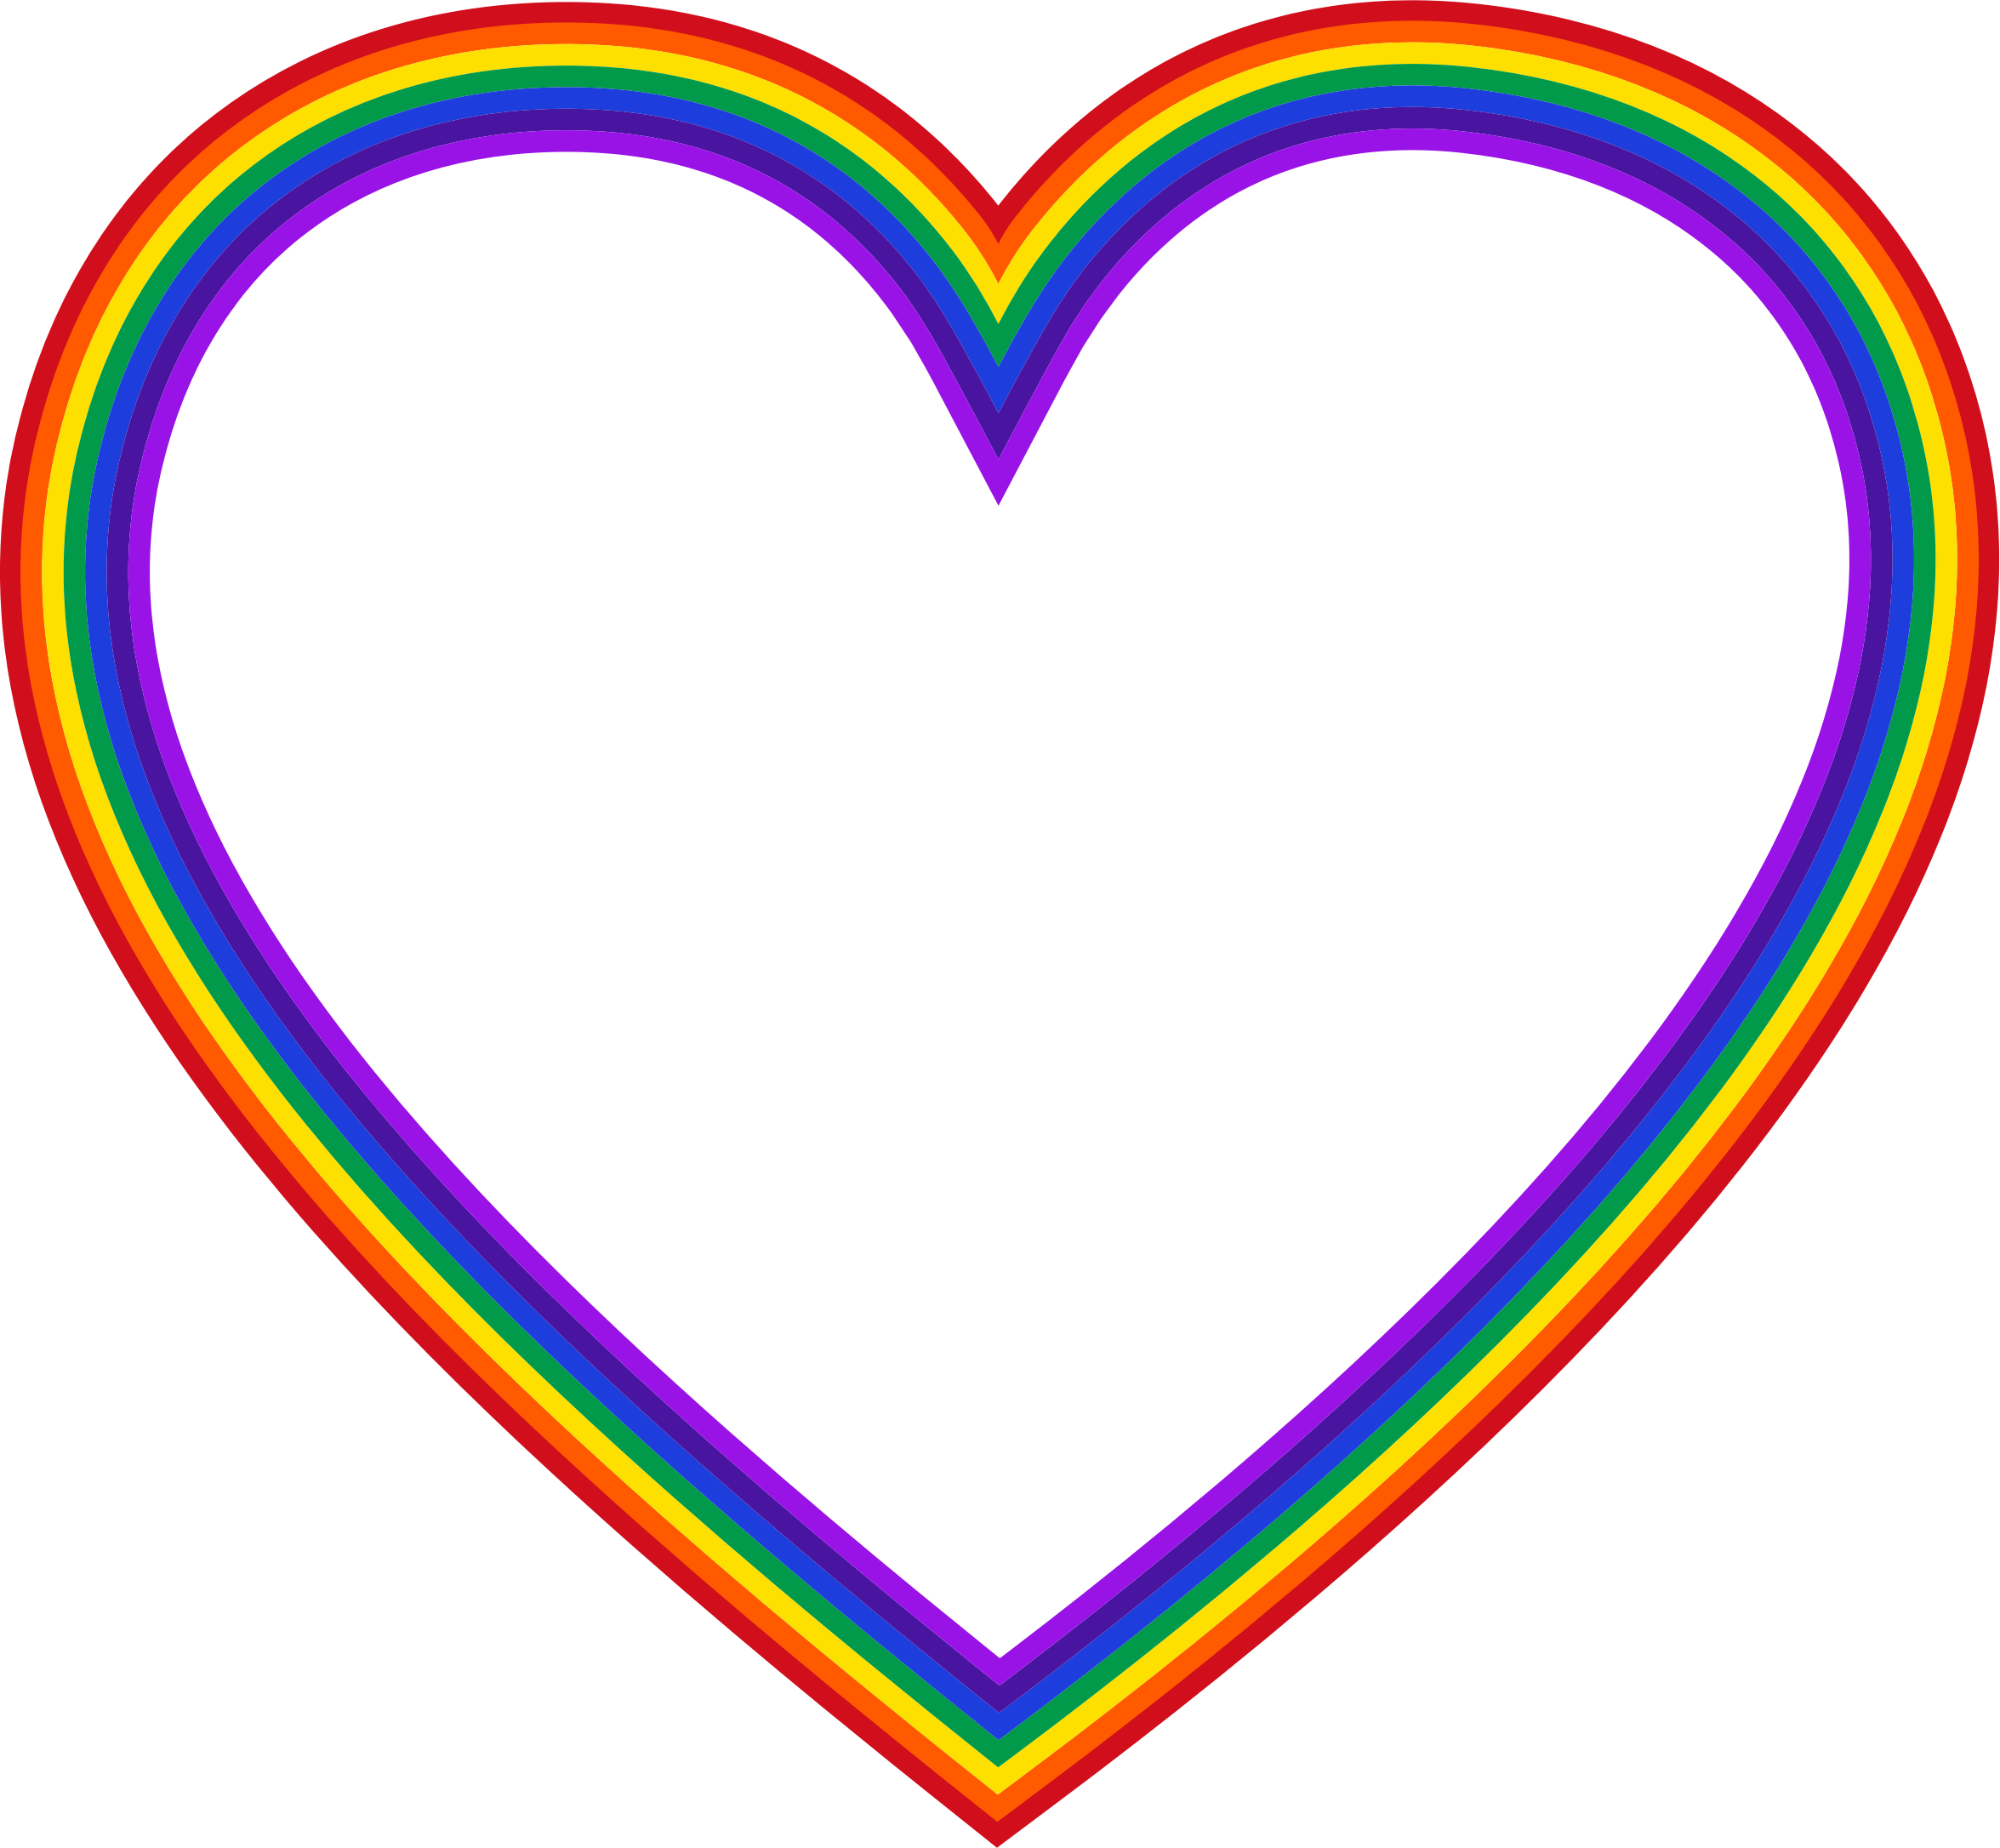 Heart Clip Art Clipart Rainbow Heart Transparent Background Png Download 2351x2172 Png Download Rainbow Png Rainbow Heart Free Clip Art